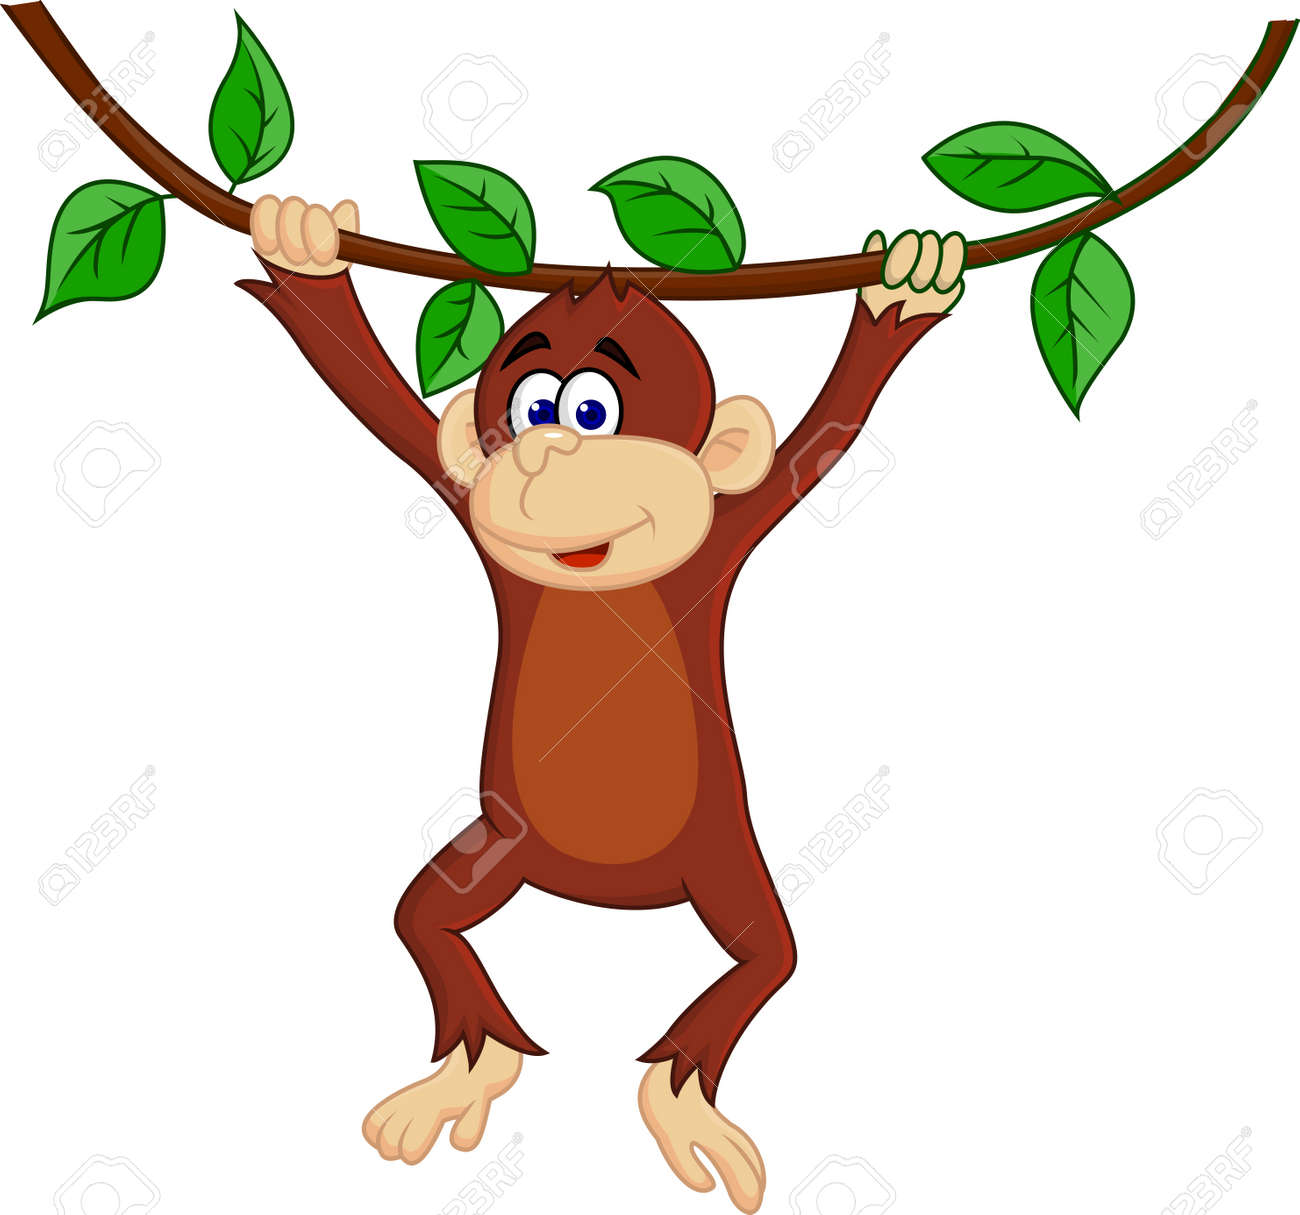 Monkey Clipart Vector Monkey Vector Illustration